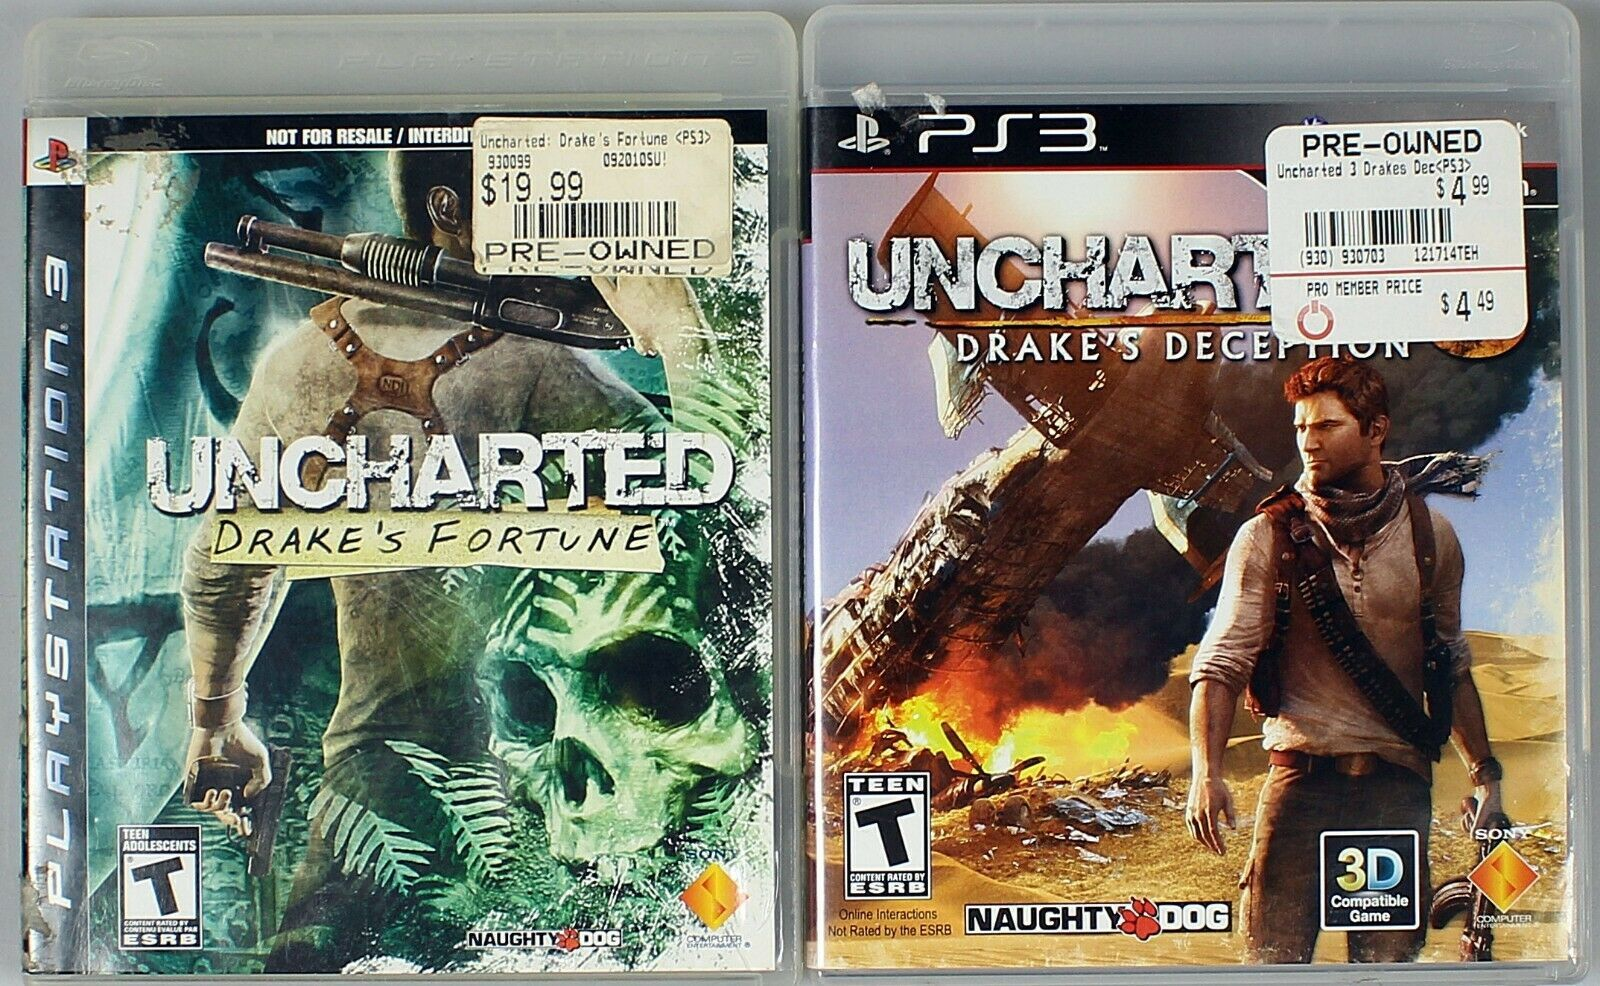 Drakes Fortune Uncharted deception lot of 2 games Sony Play station 3 PS Game